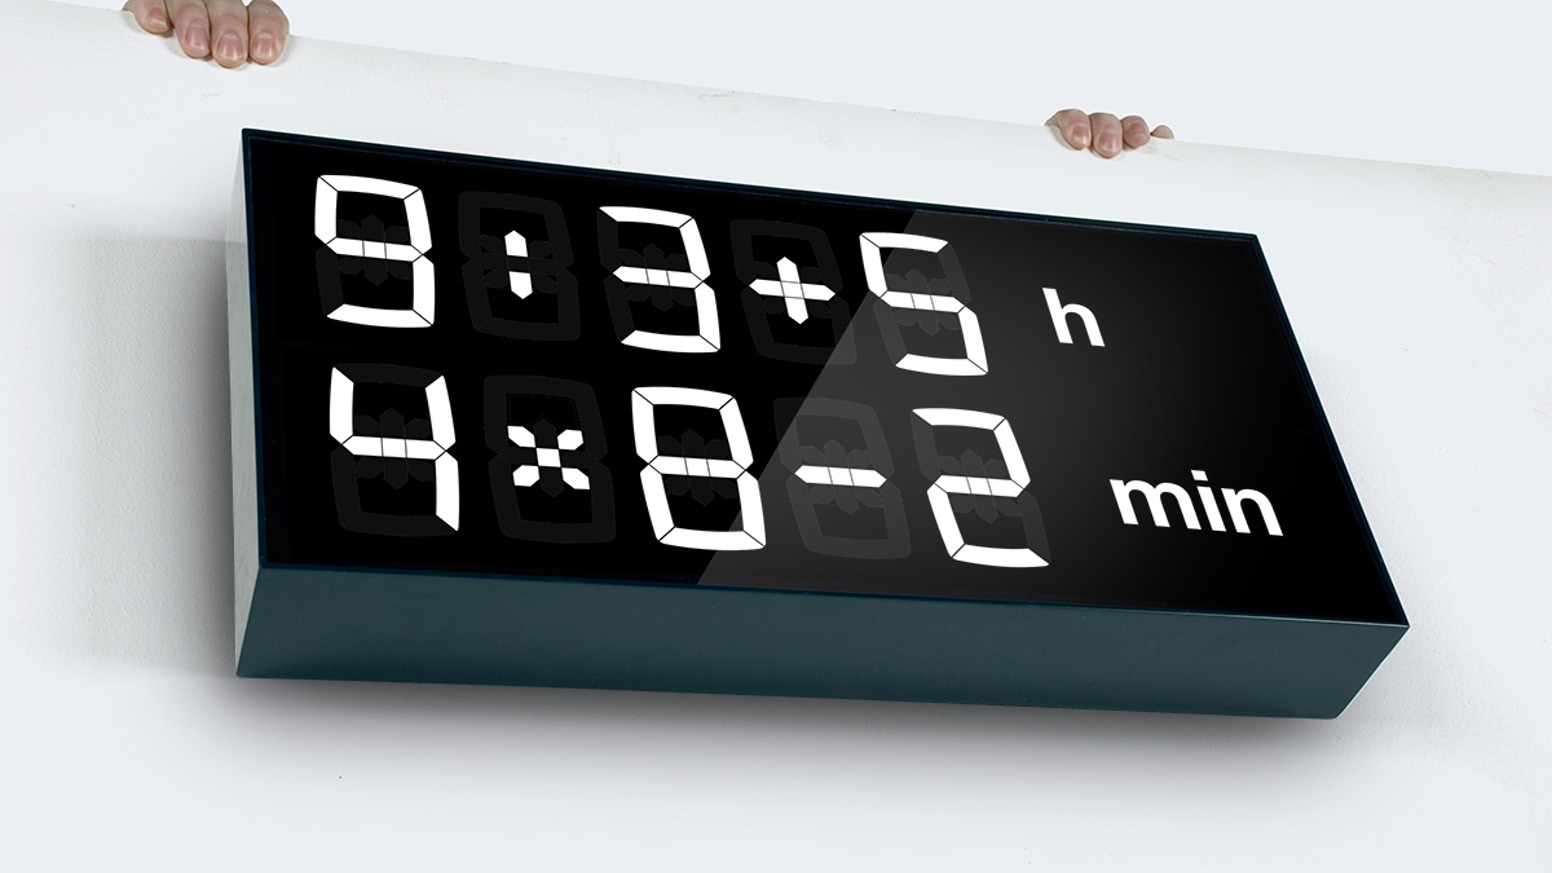 b682105fb6 The Albert clock gets your brain active, it keeps you sharp with  mathematics, and